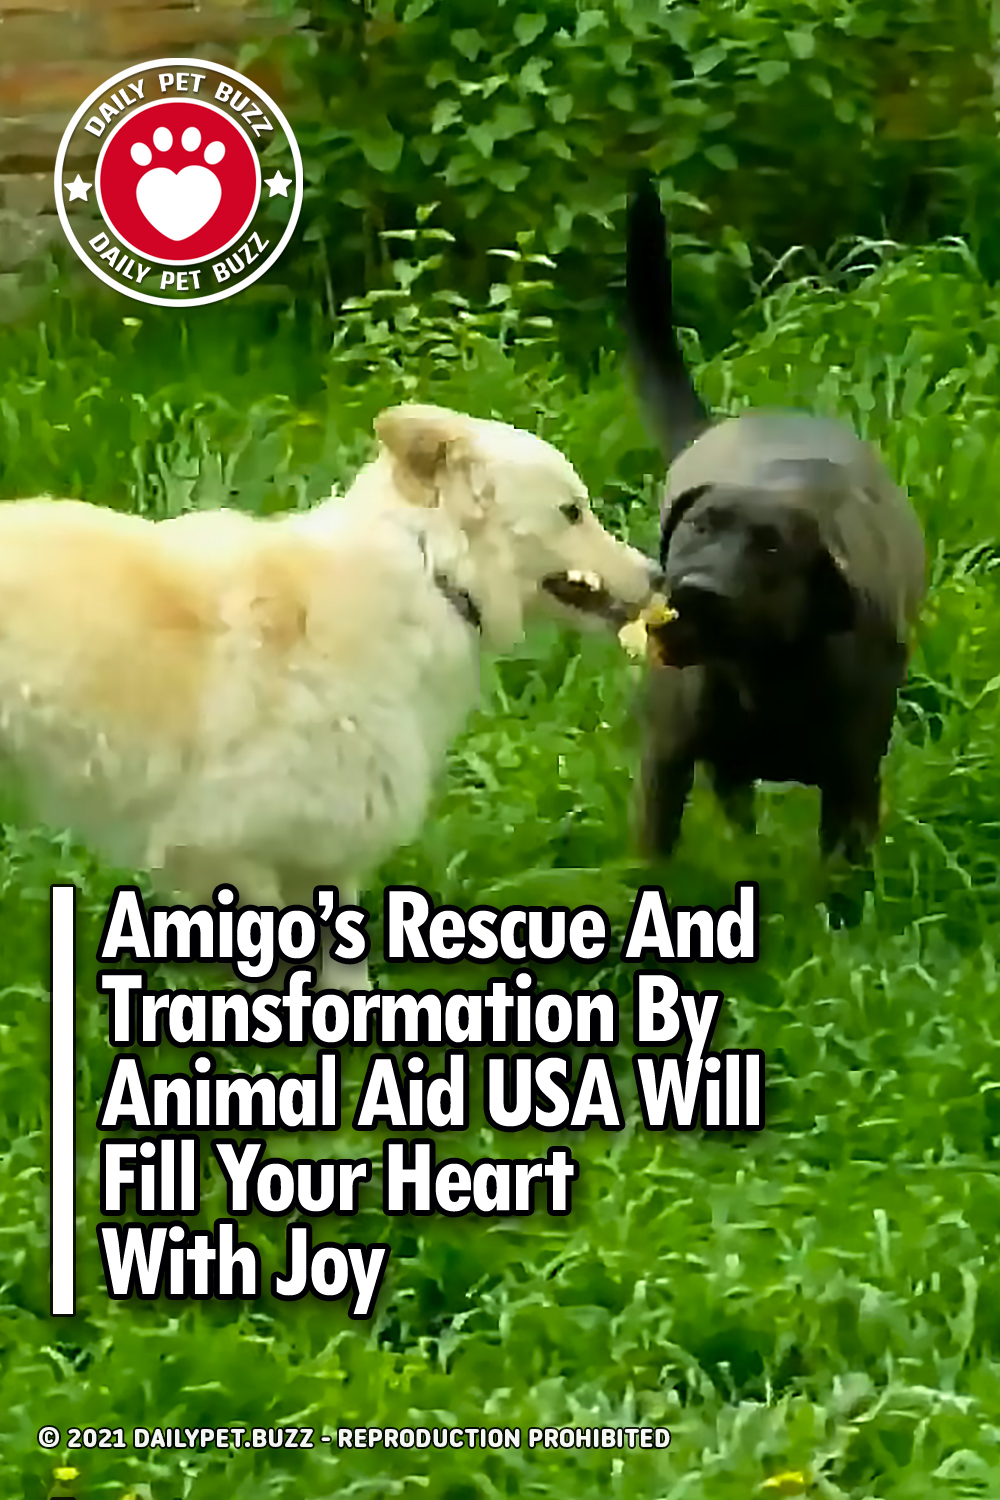 Amigo\'s Rescue And Transformation By Animal Aid USA Will Fill Your Heart With Joy